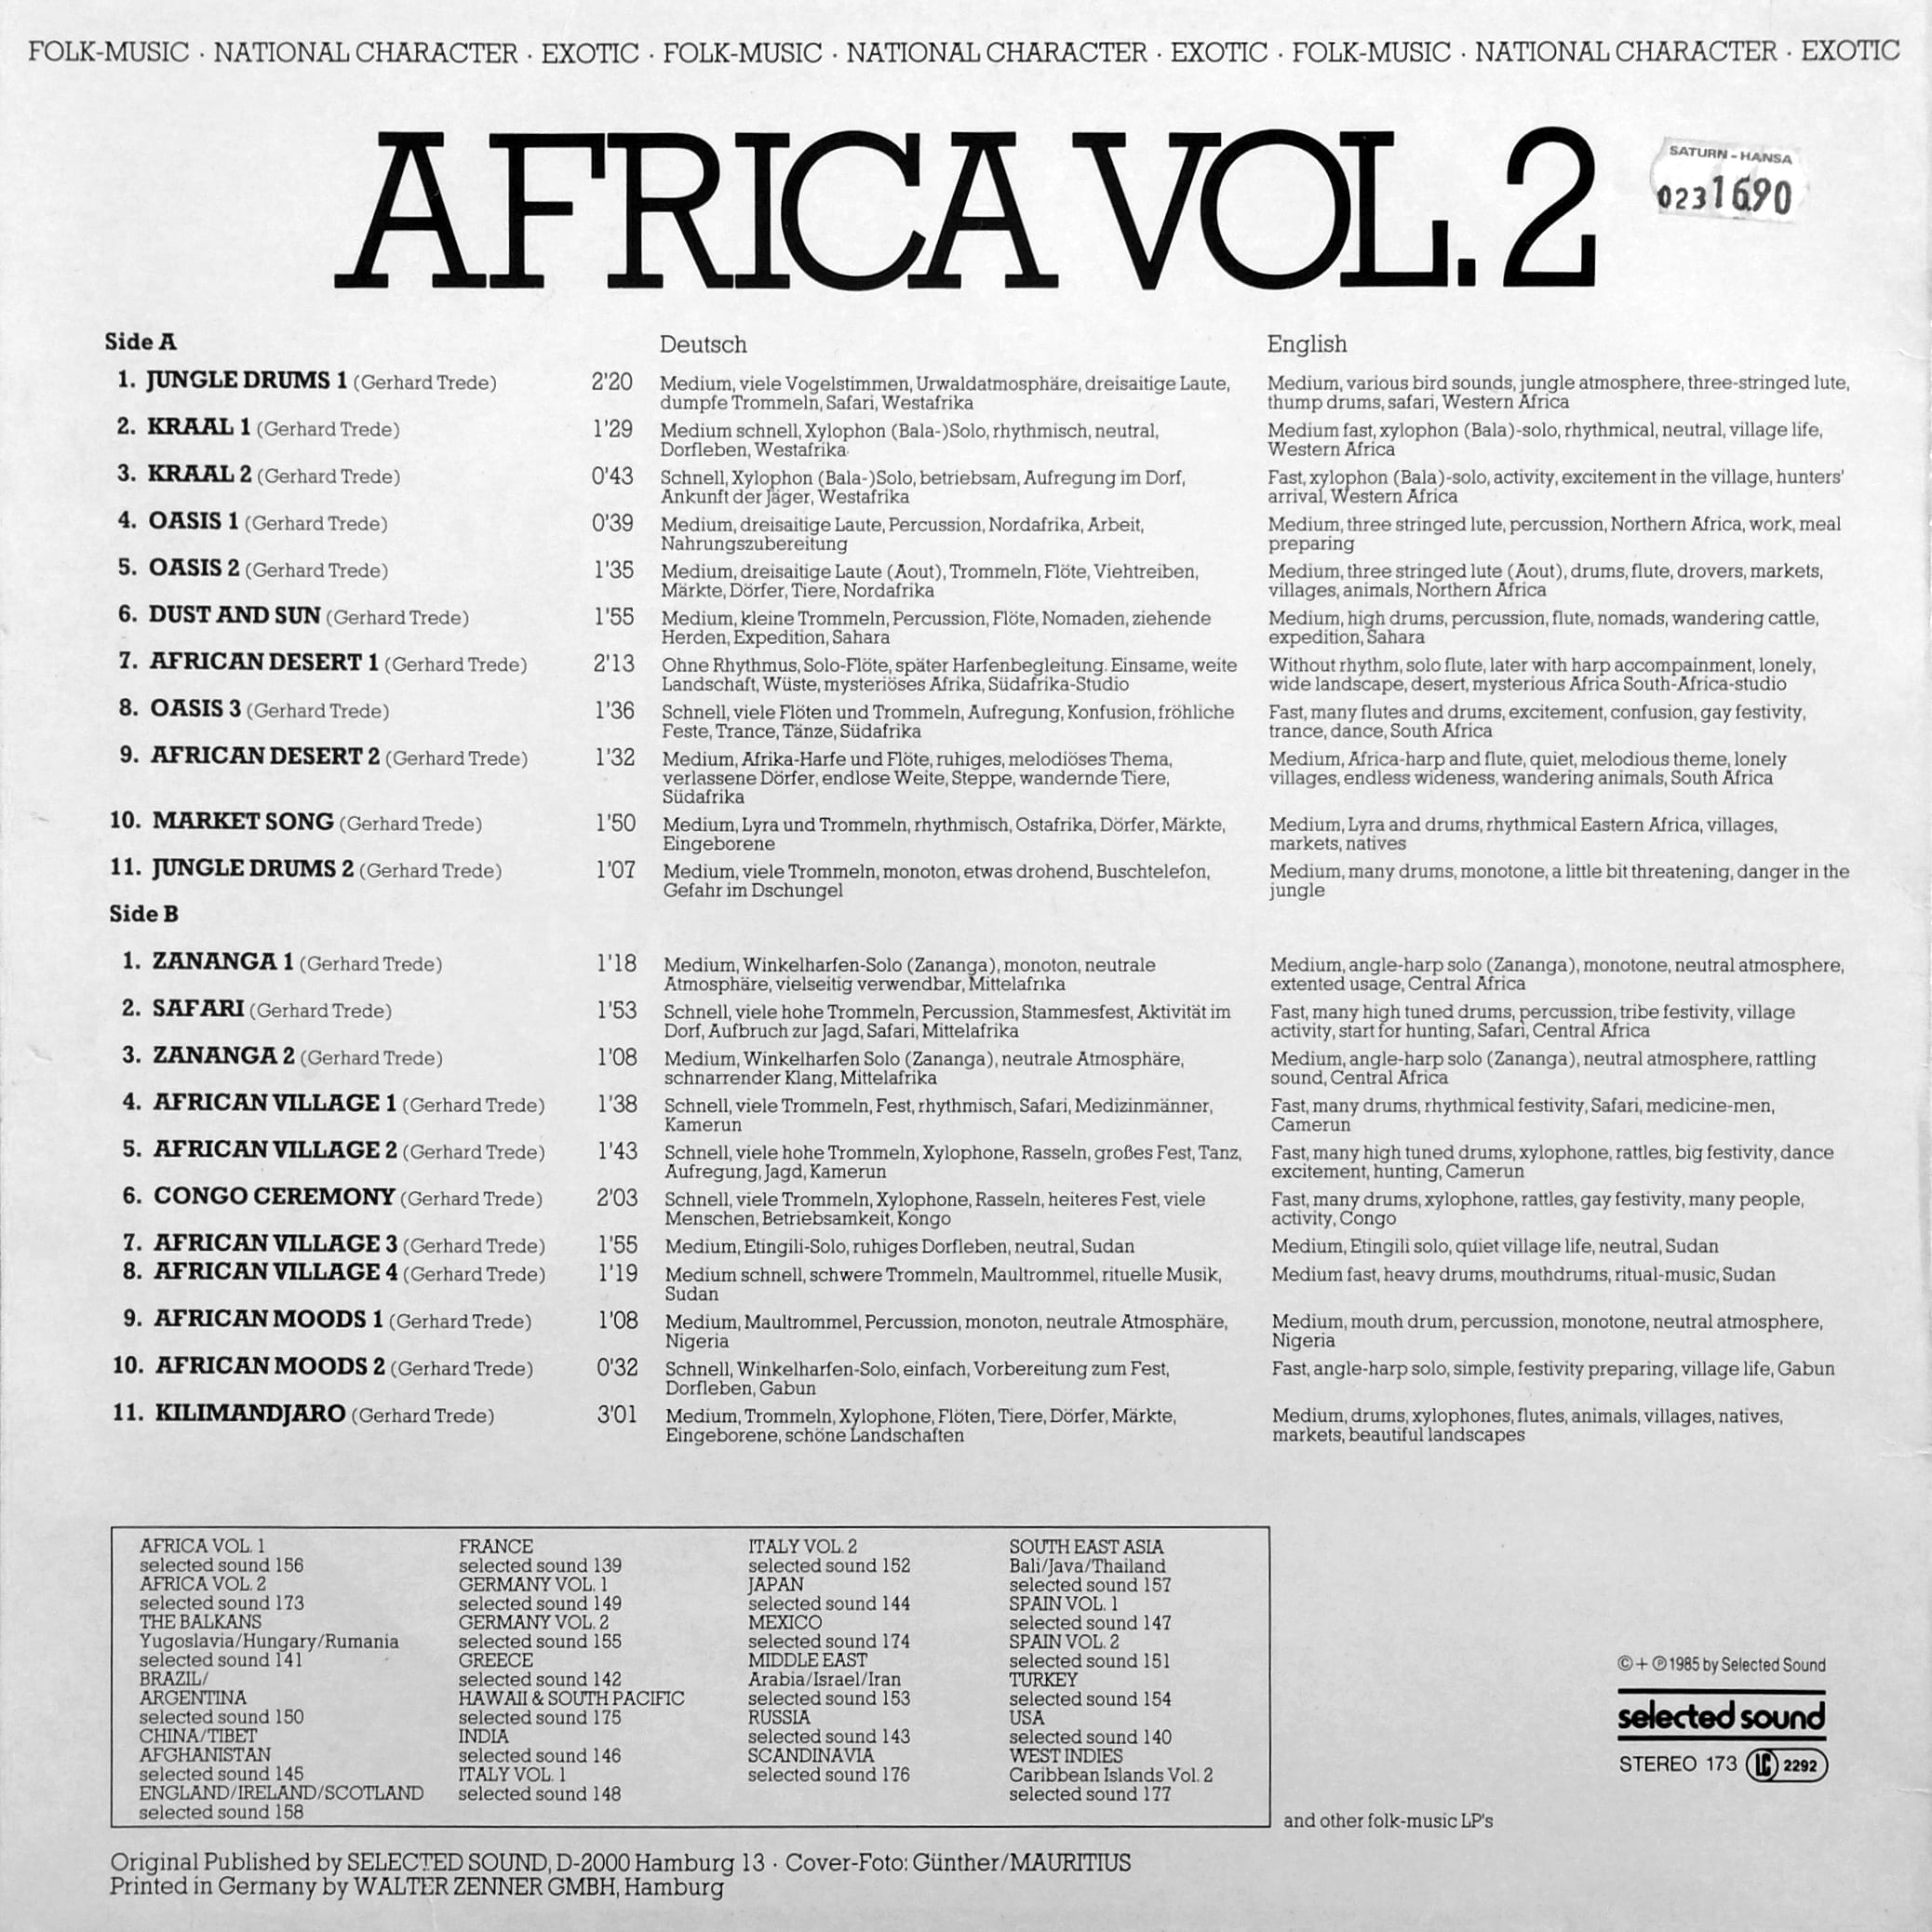 Selected Sound ‎– Folklore-Serie AFRICA VOL.2 – Selected Sound ‎– ST 173 Germany 1985 by Gerhard Trede